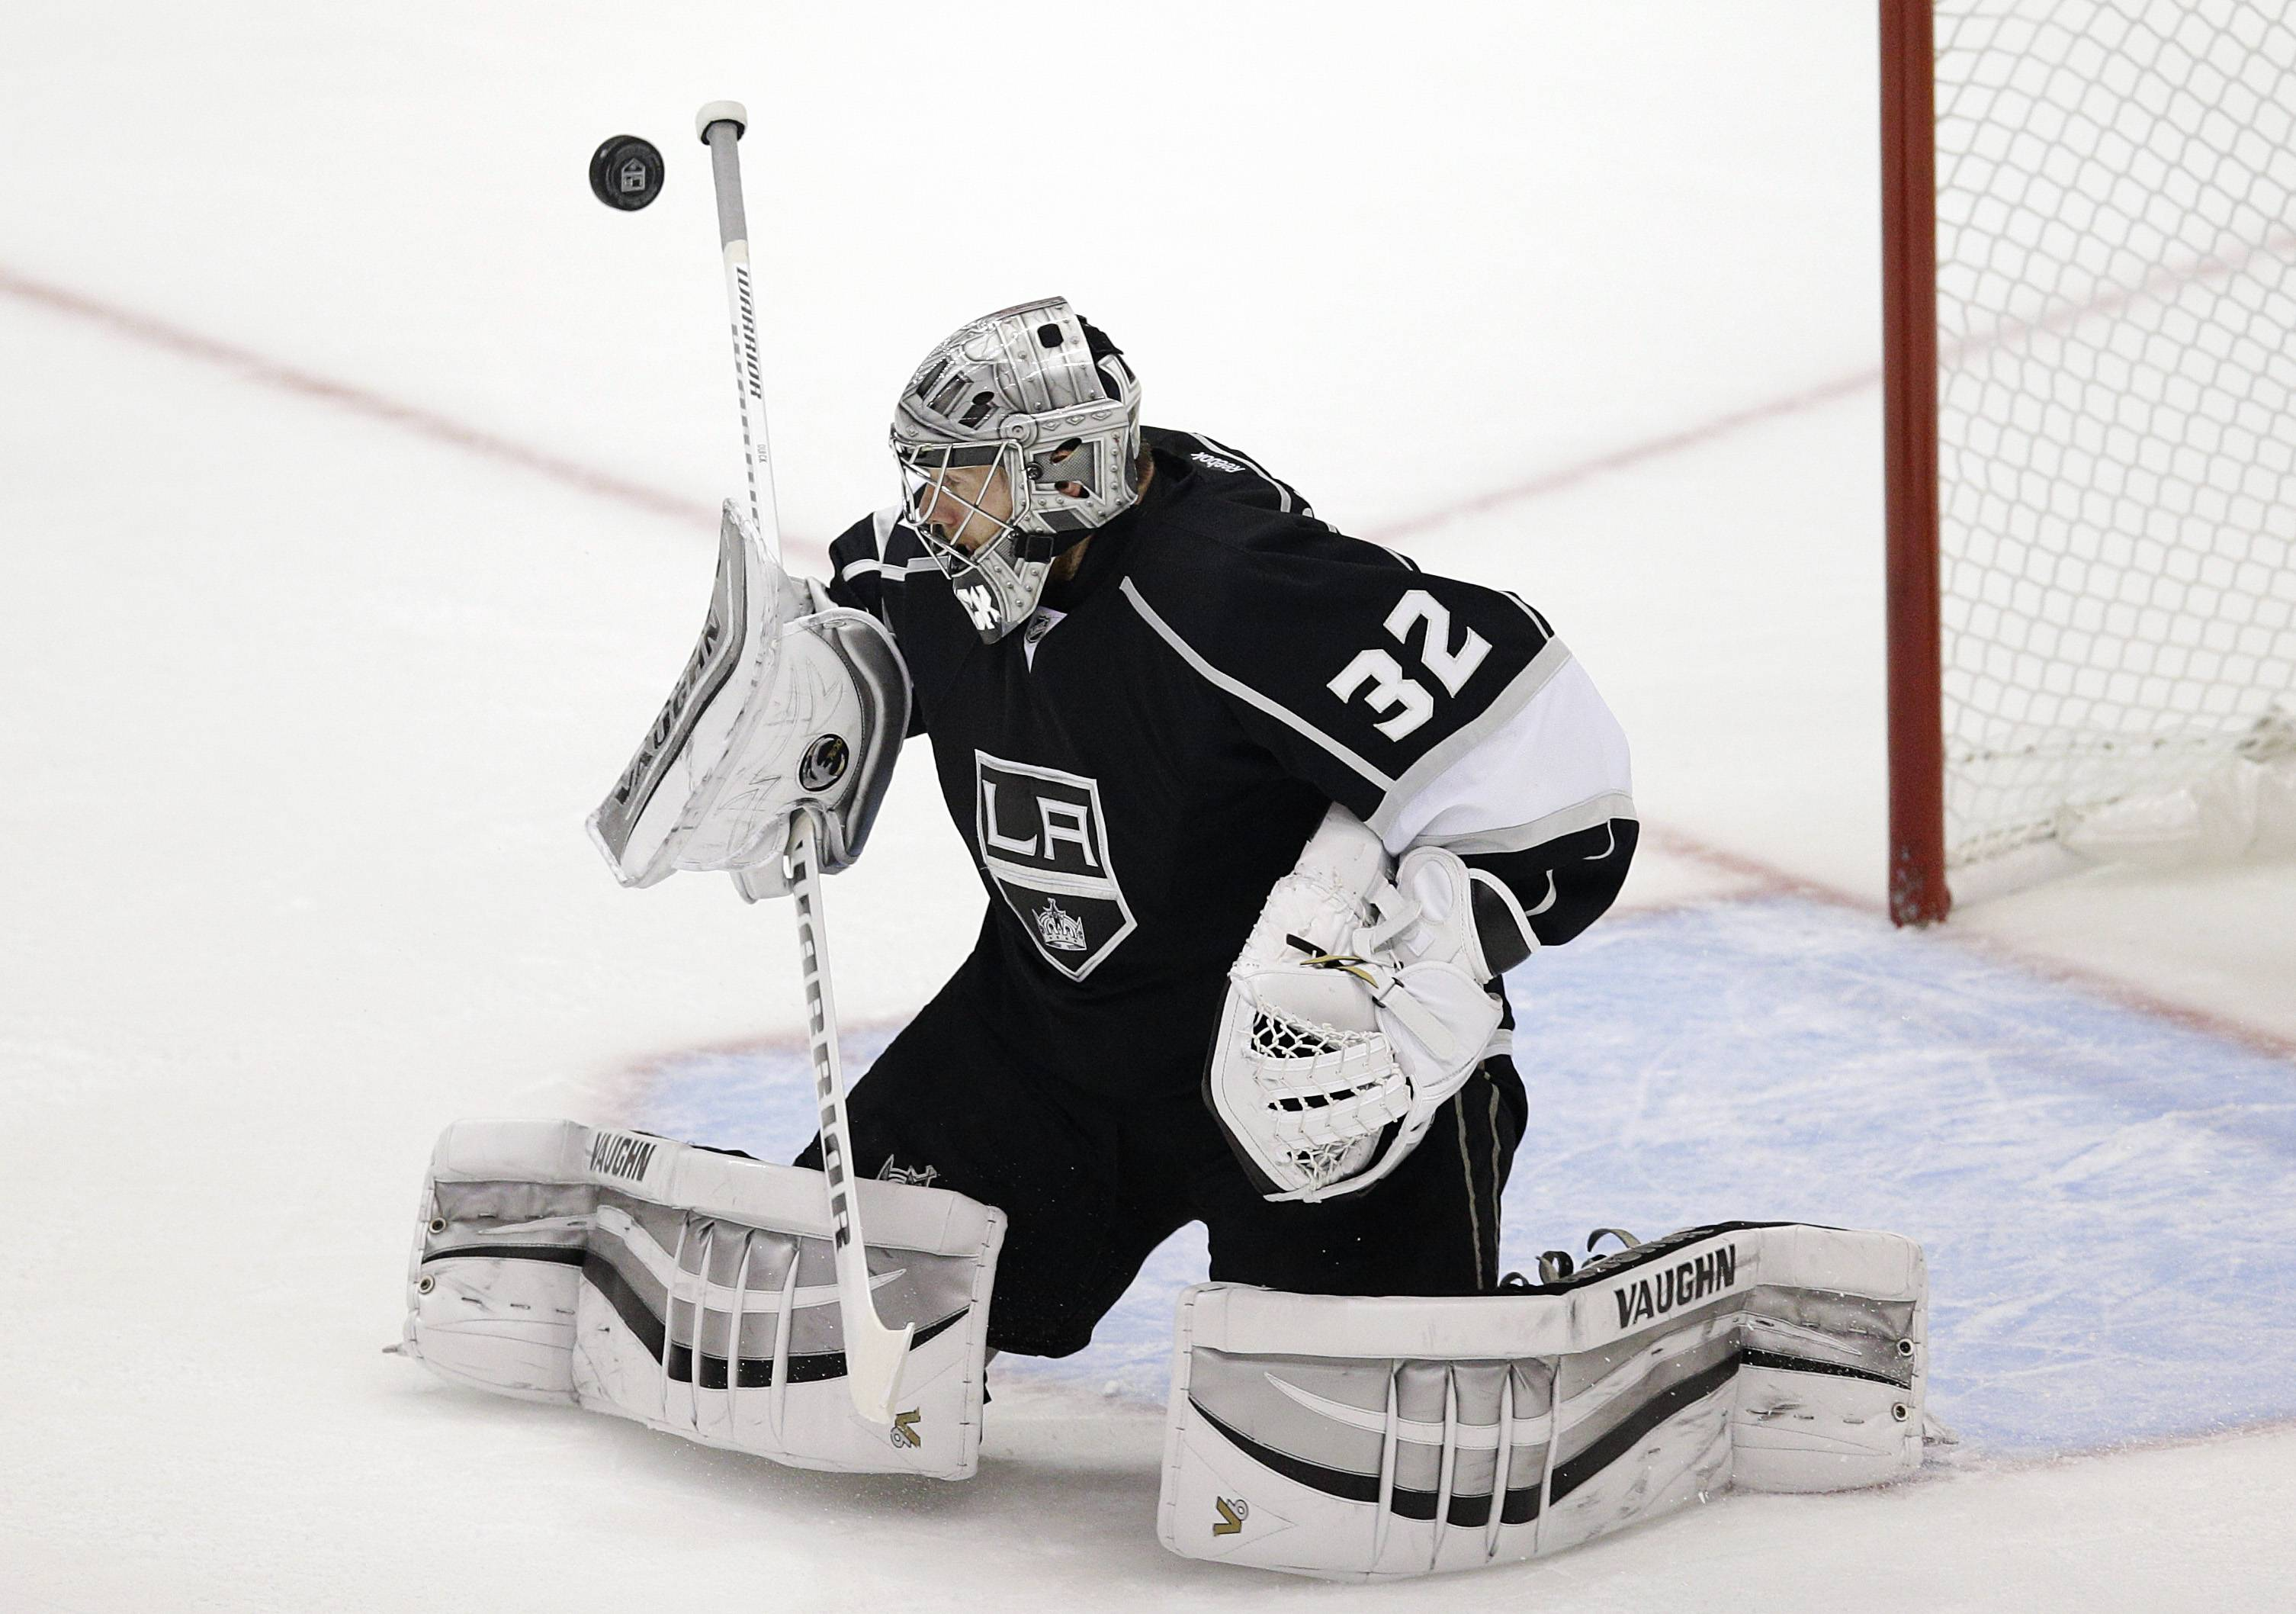 Los Angeles Kings goalie Jonathan Quick makes a save during the first period of Game 4 of the Western Conference finals of the NHL hockey Stanley Cup playoffs against the Chicago Blackhawks on Monday, May 26, 2014, in Los Angeles.